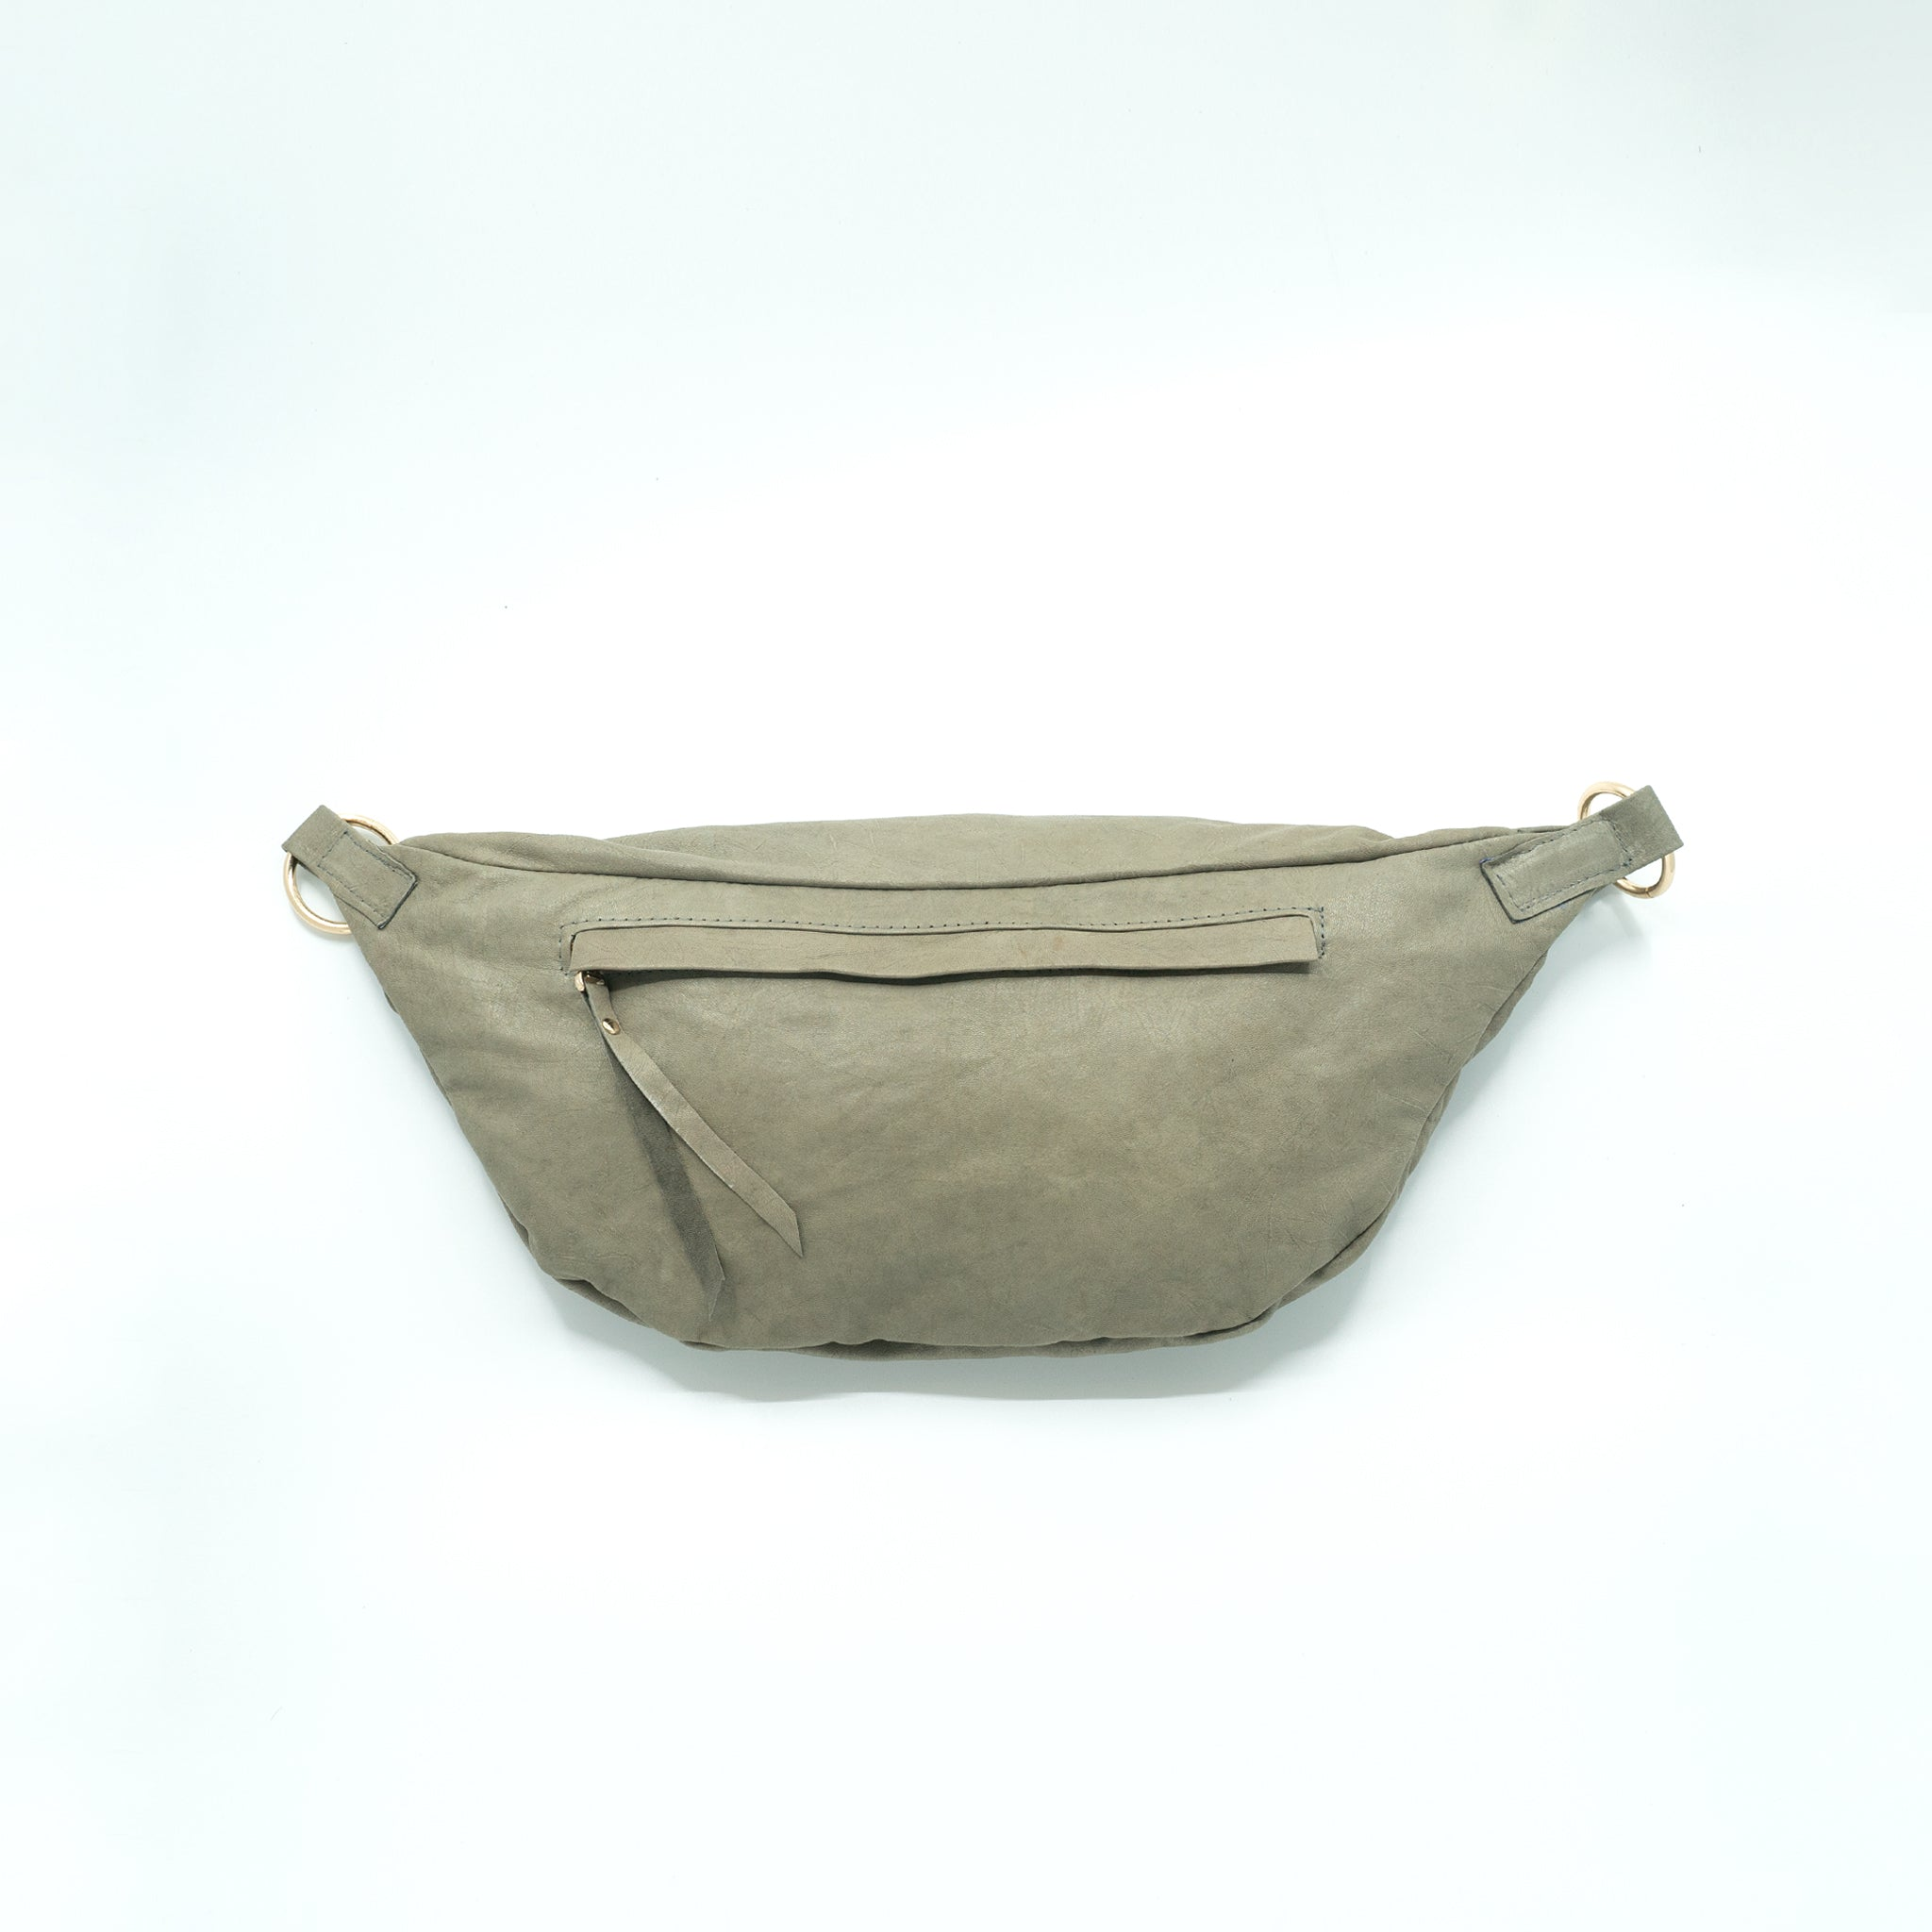 The Everywhere Bag #20 — Light Sage Green Leather with Gold Hardware